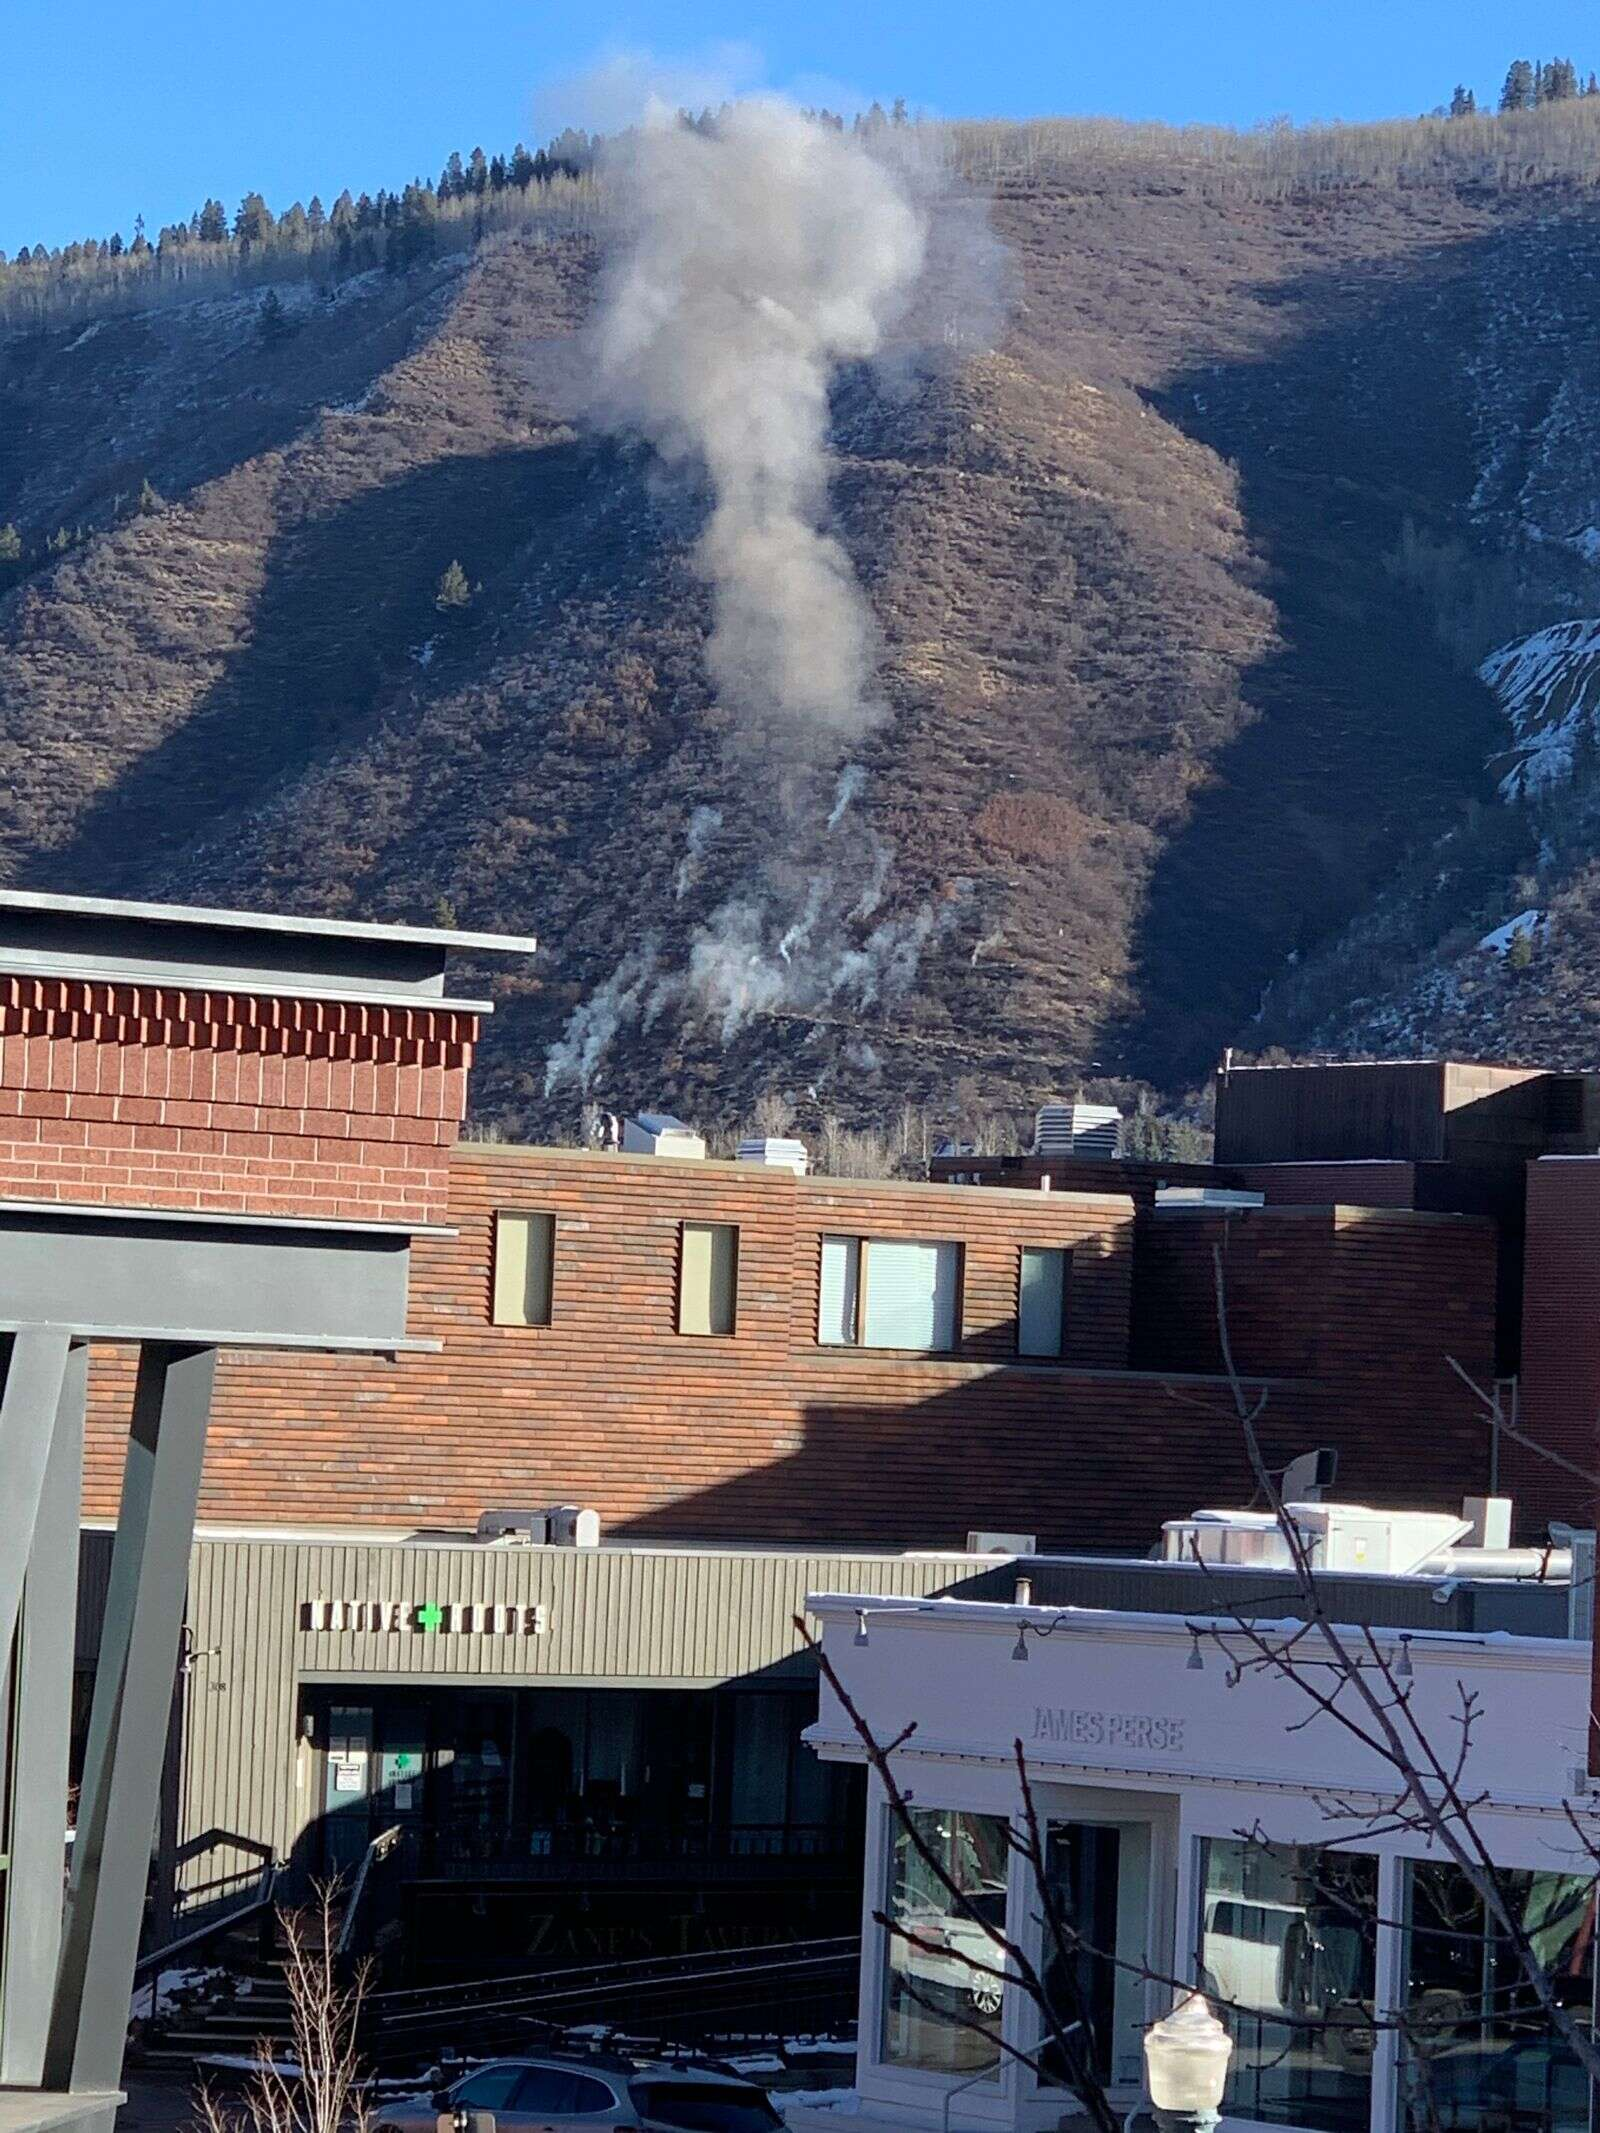 Smoke is seen rising from the area of Smuggler Mine on Saturday morning. Photo courtesy of Peter Grenney.